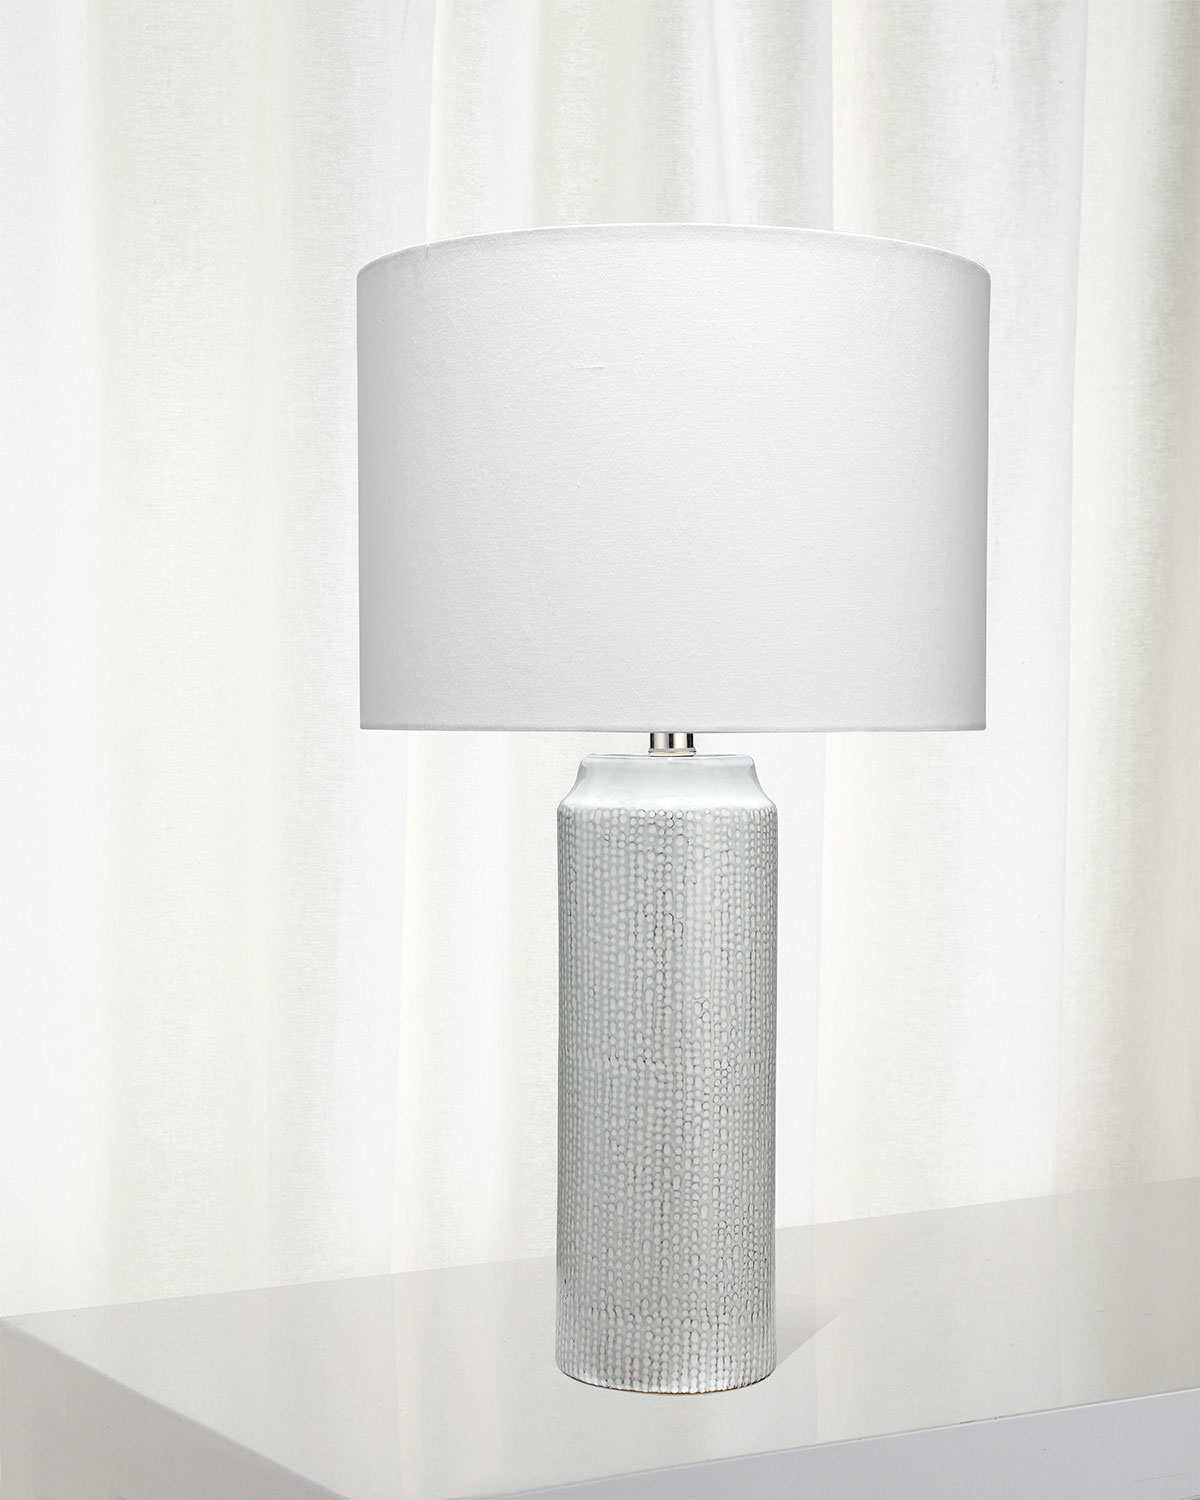 Jamie Young Lighting & lamps BELLA TABLE LAMP IN LIGHT BLUE PATTERNED CERAMIC